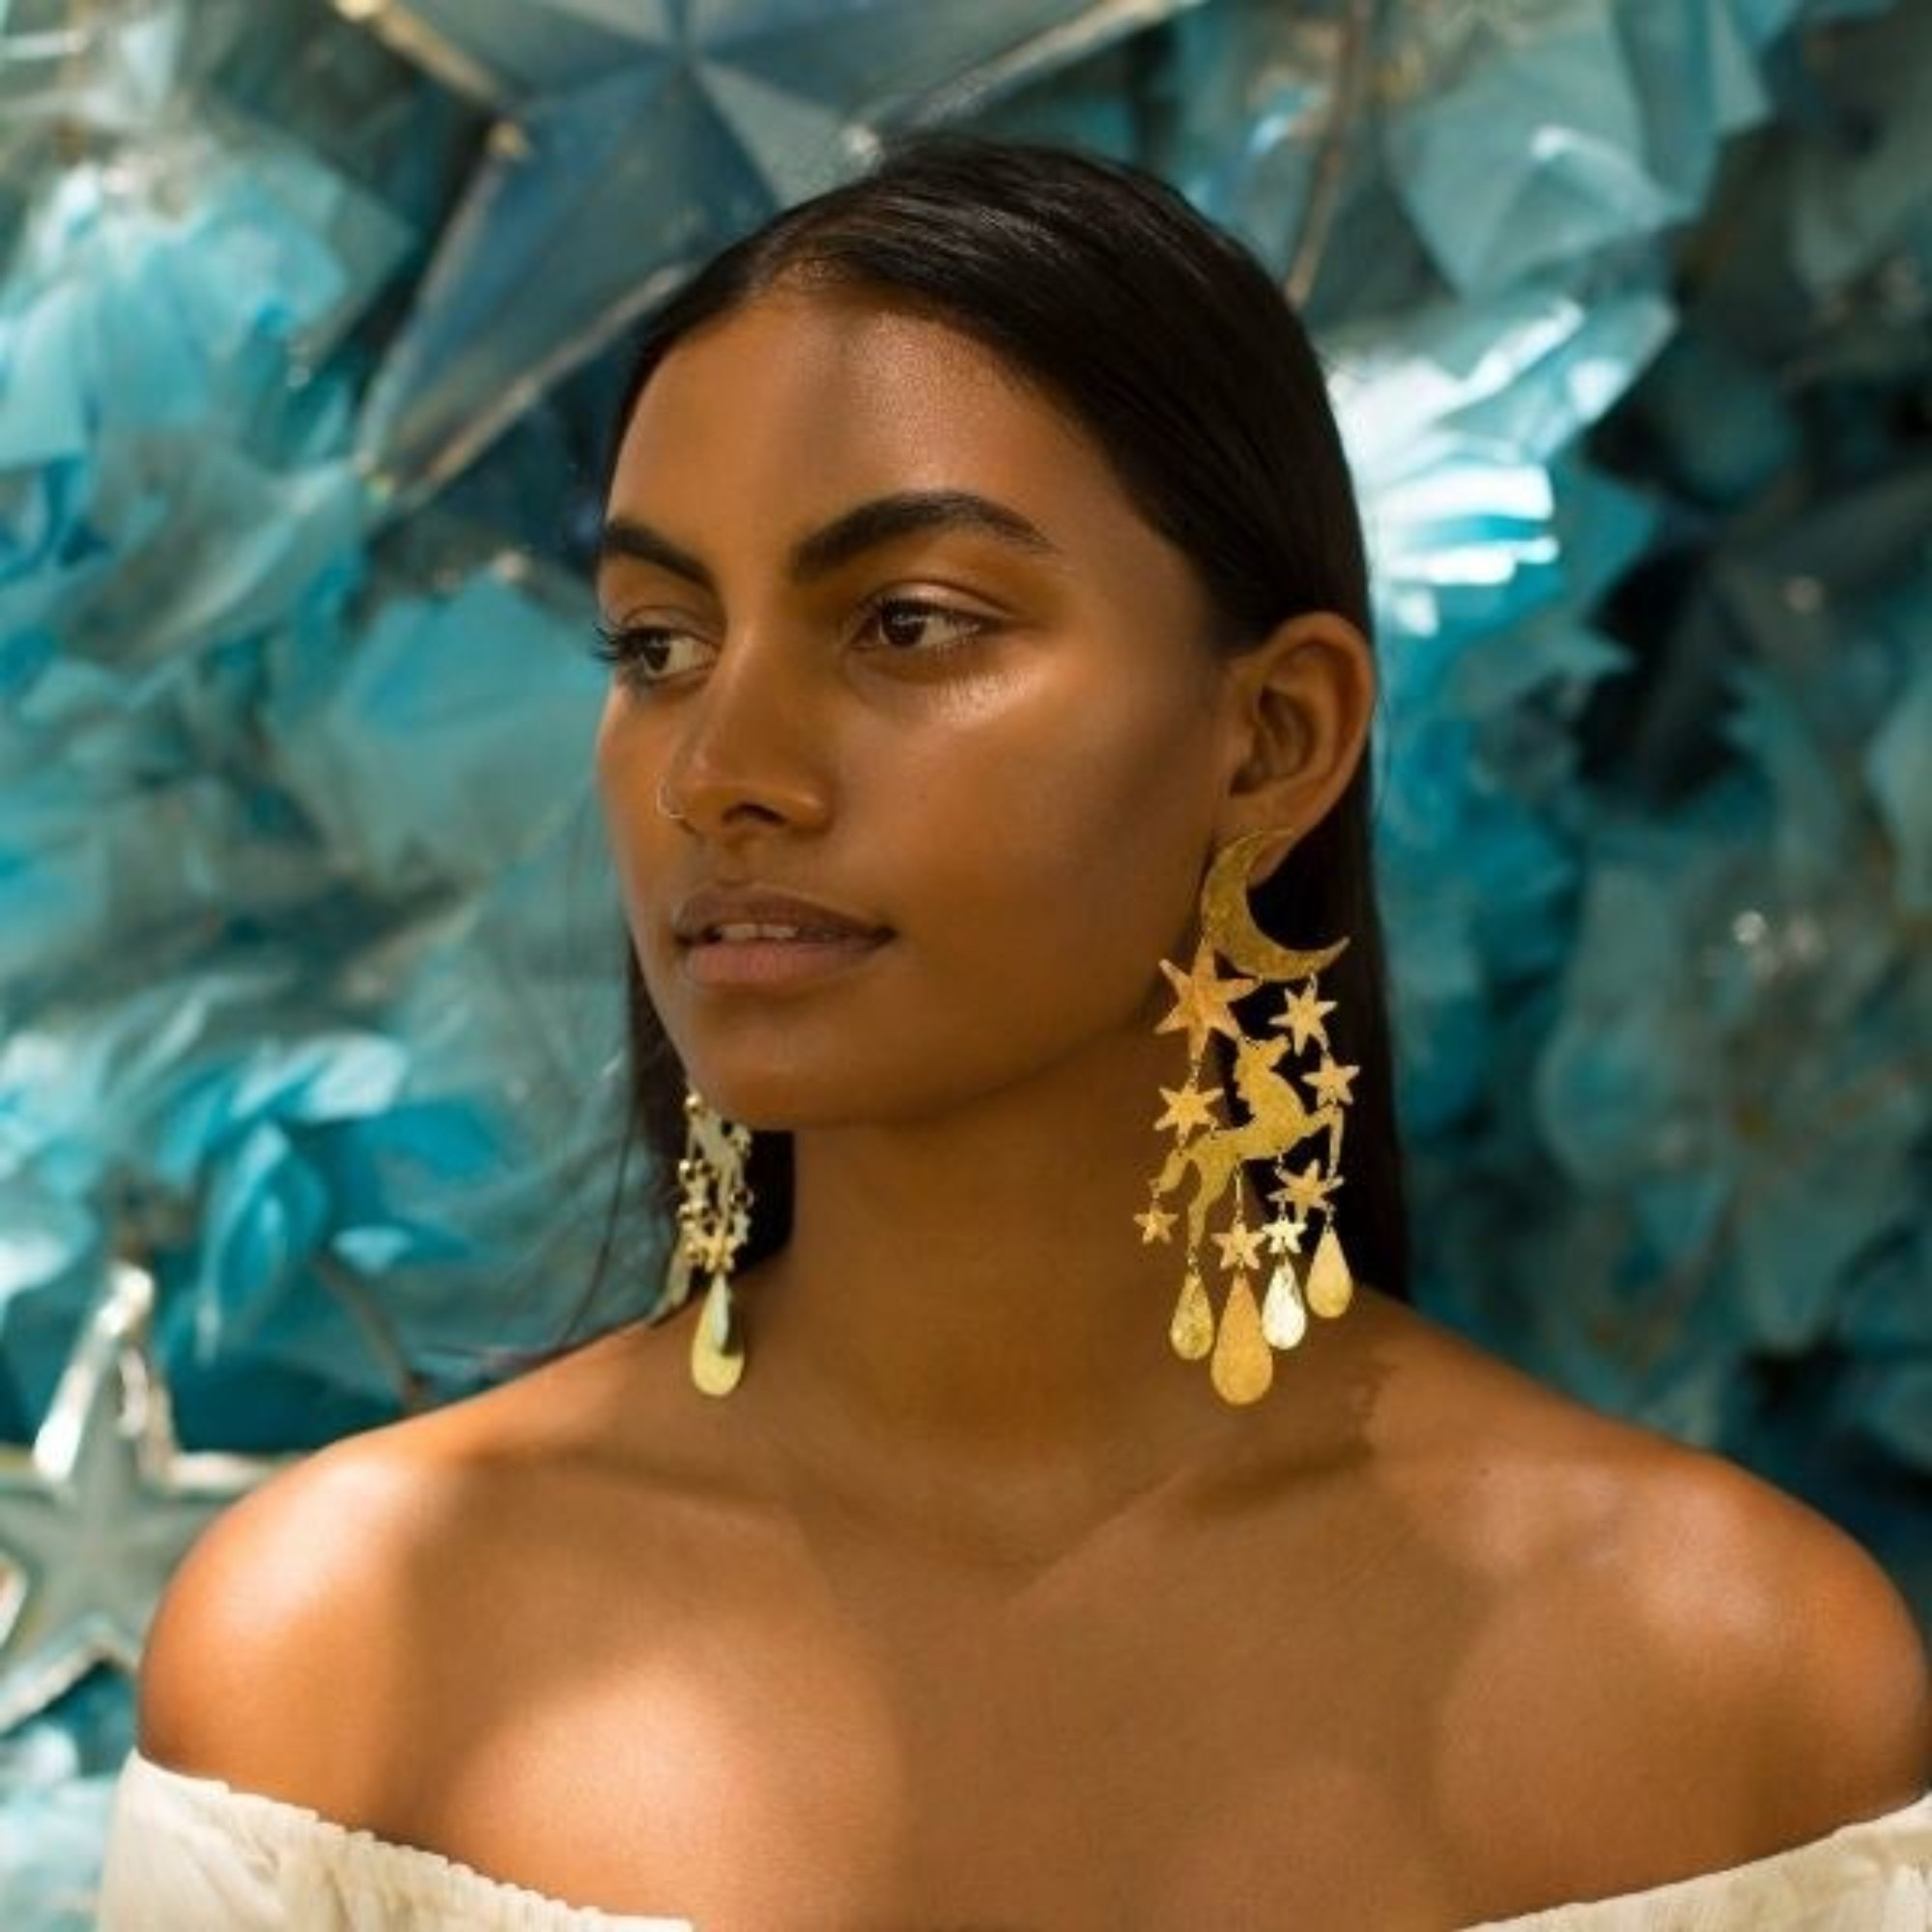 model wearing the large gold earrings that graze their shoulder